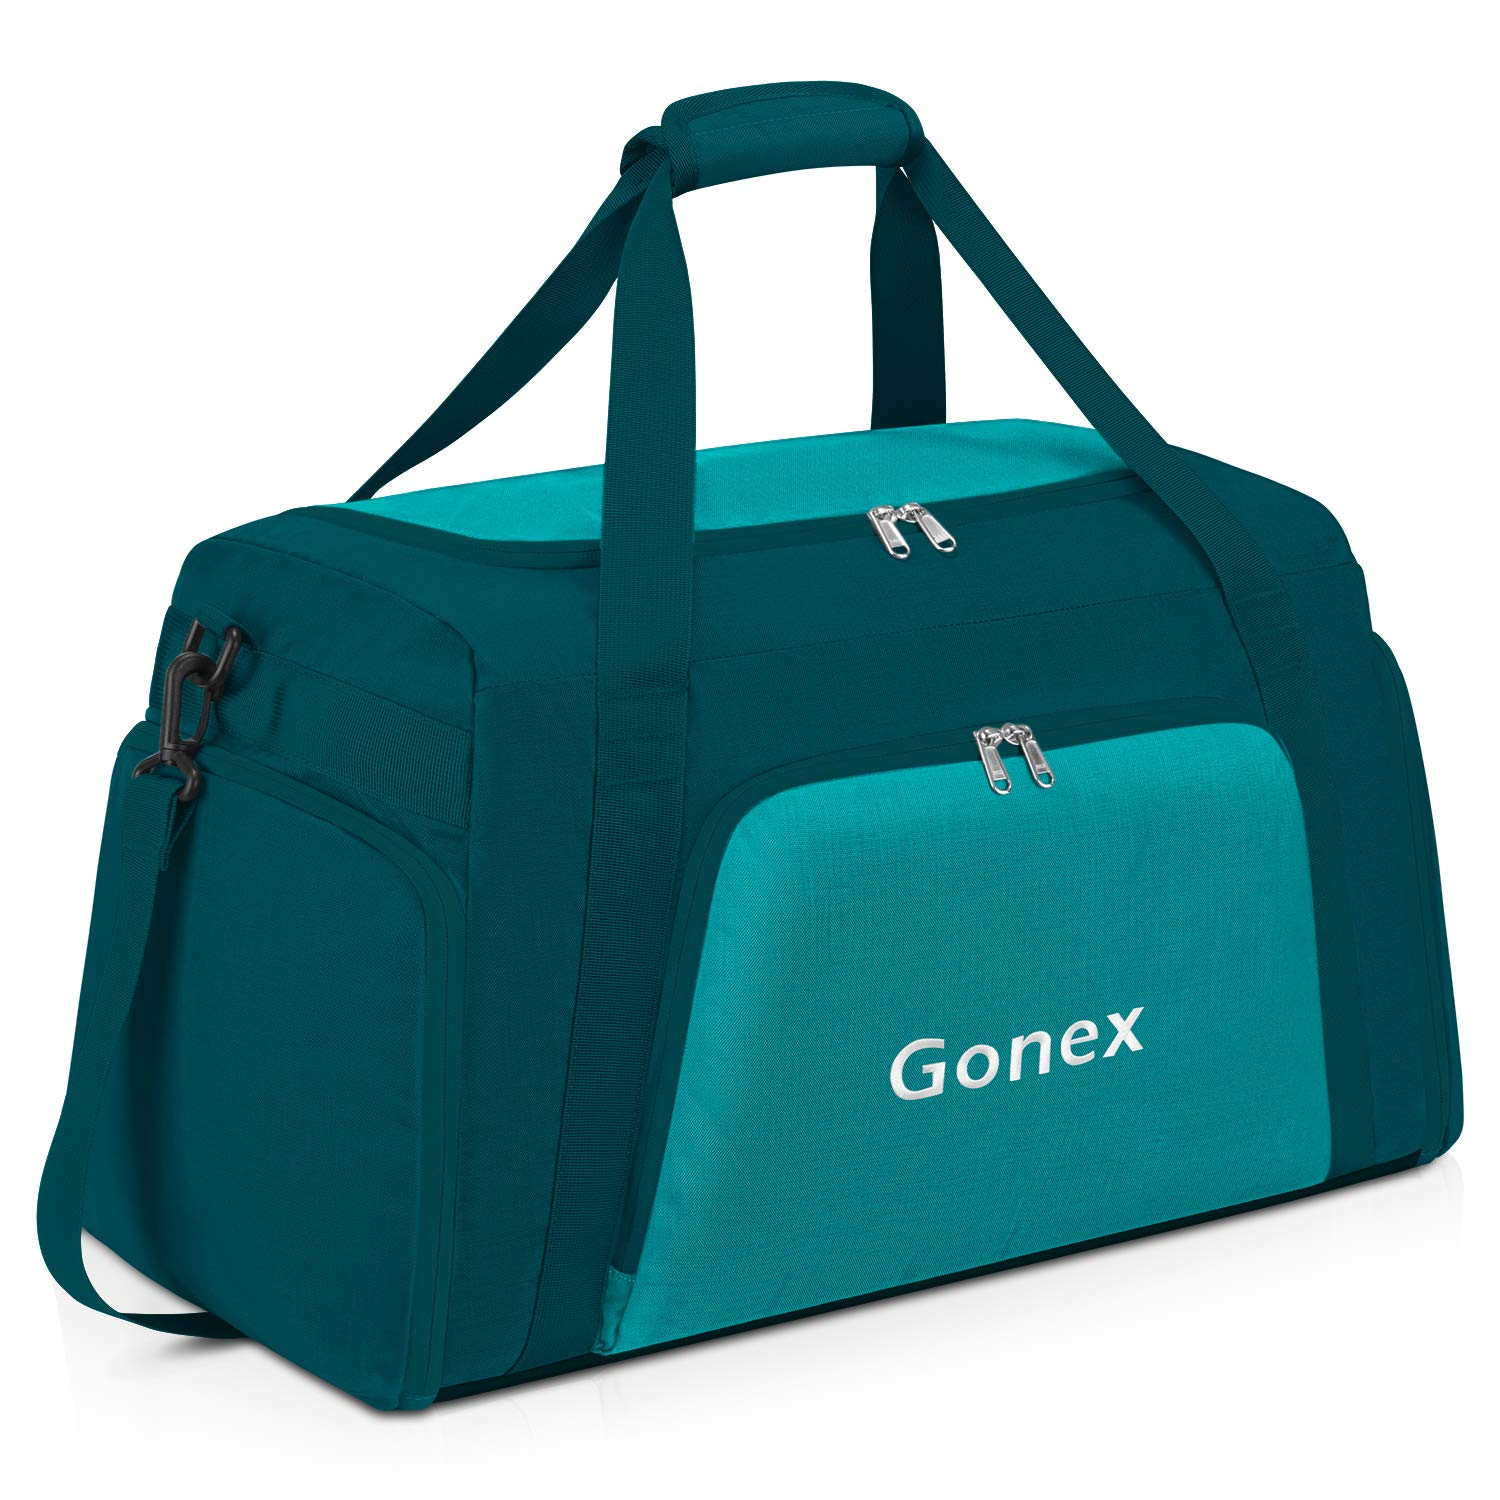 Gonex 60L Travel Duffle Bag Weekender Overnight Duffel Bag with Shoe Compartment